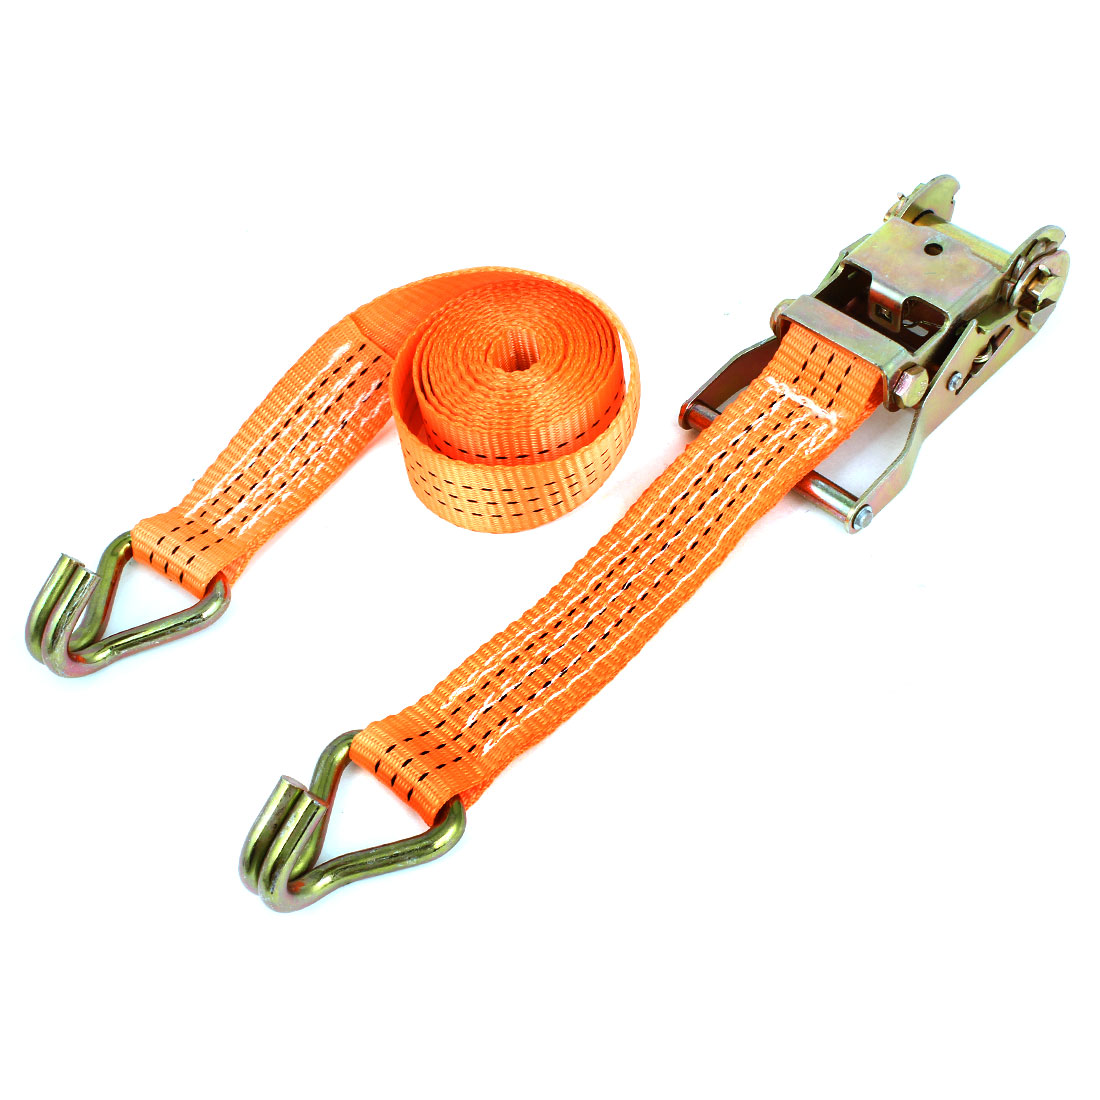 "Packages Goods Fixed Belt Dual J Hooks Ratchet Tie Down Strap 8.2ftx1.5"" Orange"